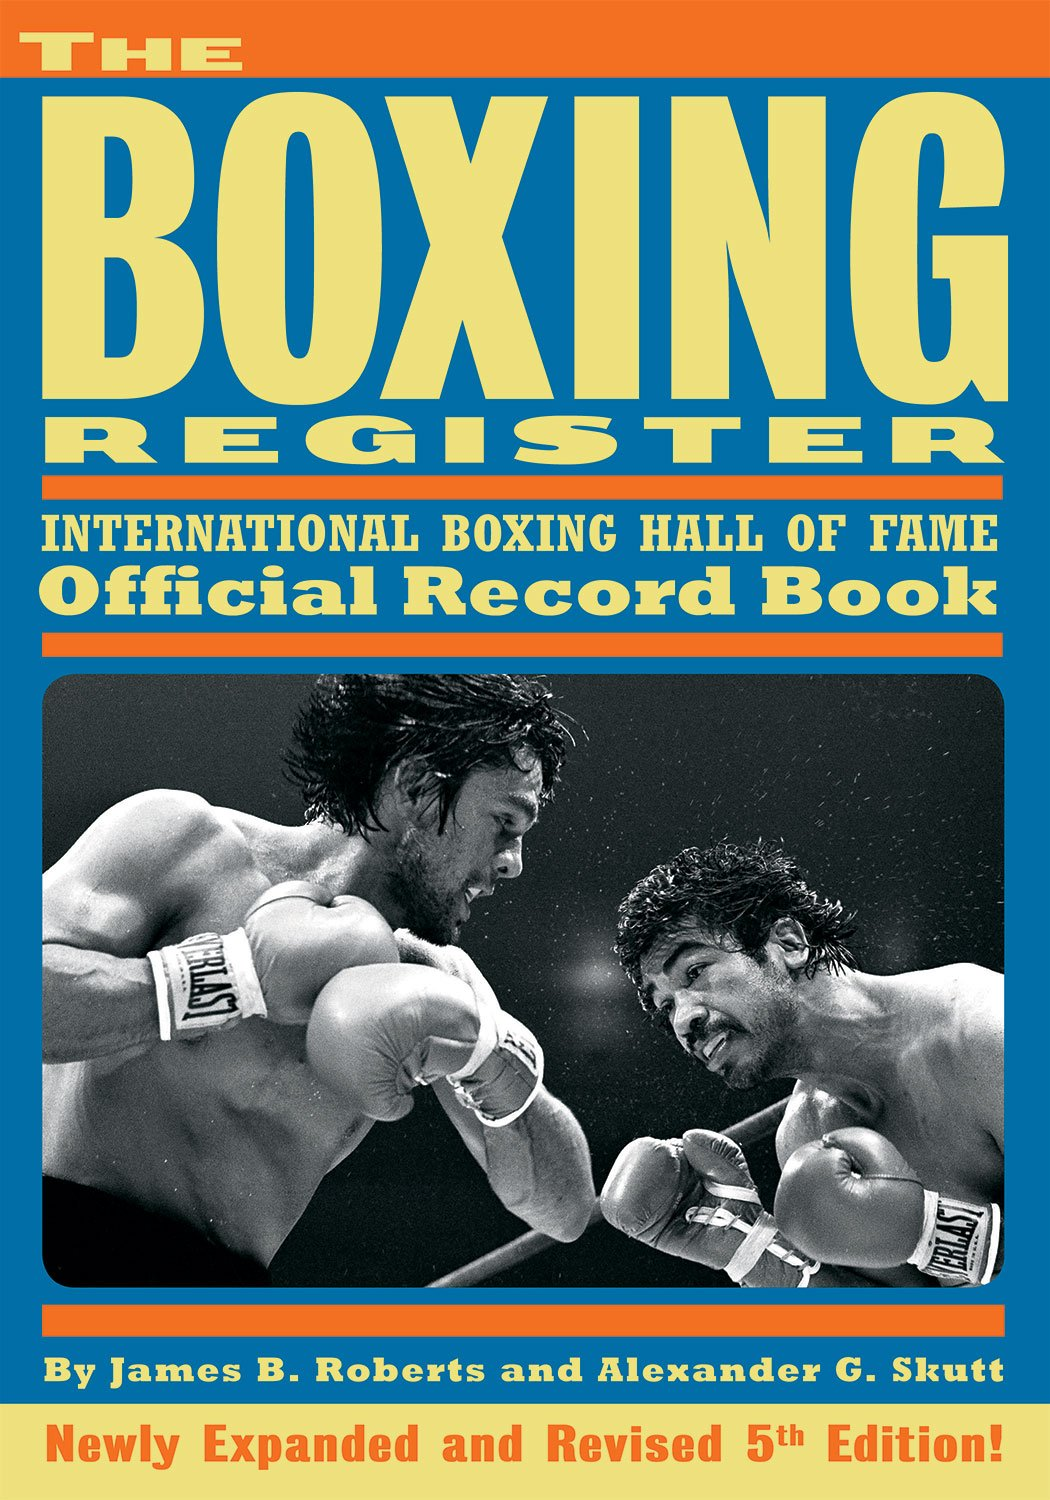 Amazon.com The Boxing Register International Boxing Hall of Fame Official Record Book (9781590134993) James B. Roberts Alexander G. Skutt Books & Amazon.com: The Boxing Register: International Boxing Hall of Fame ... 25forcollege.com